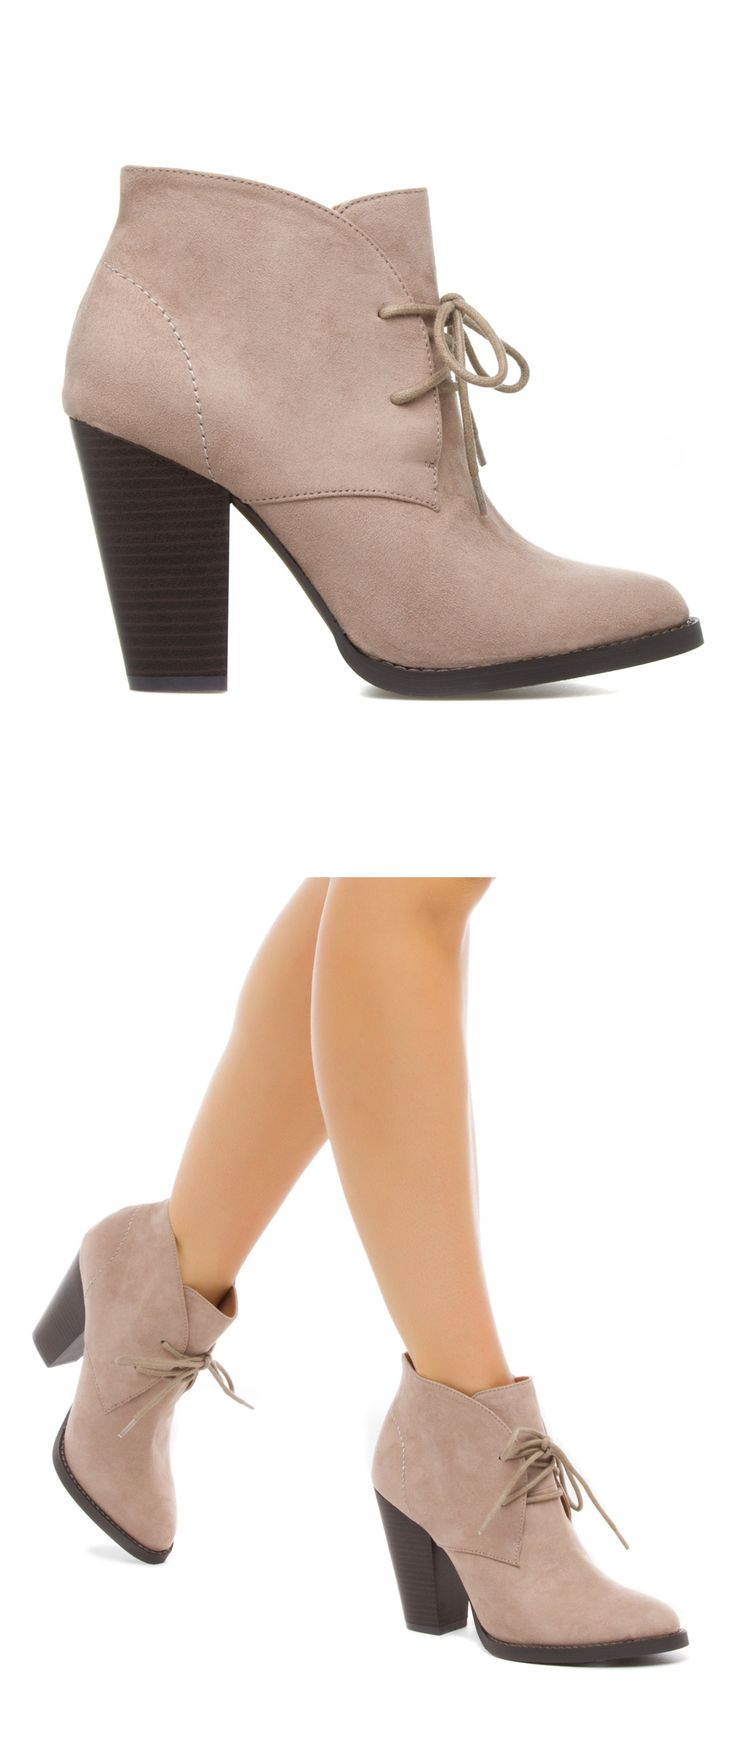 Blush boots | shoes and bags